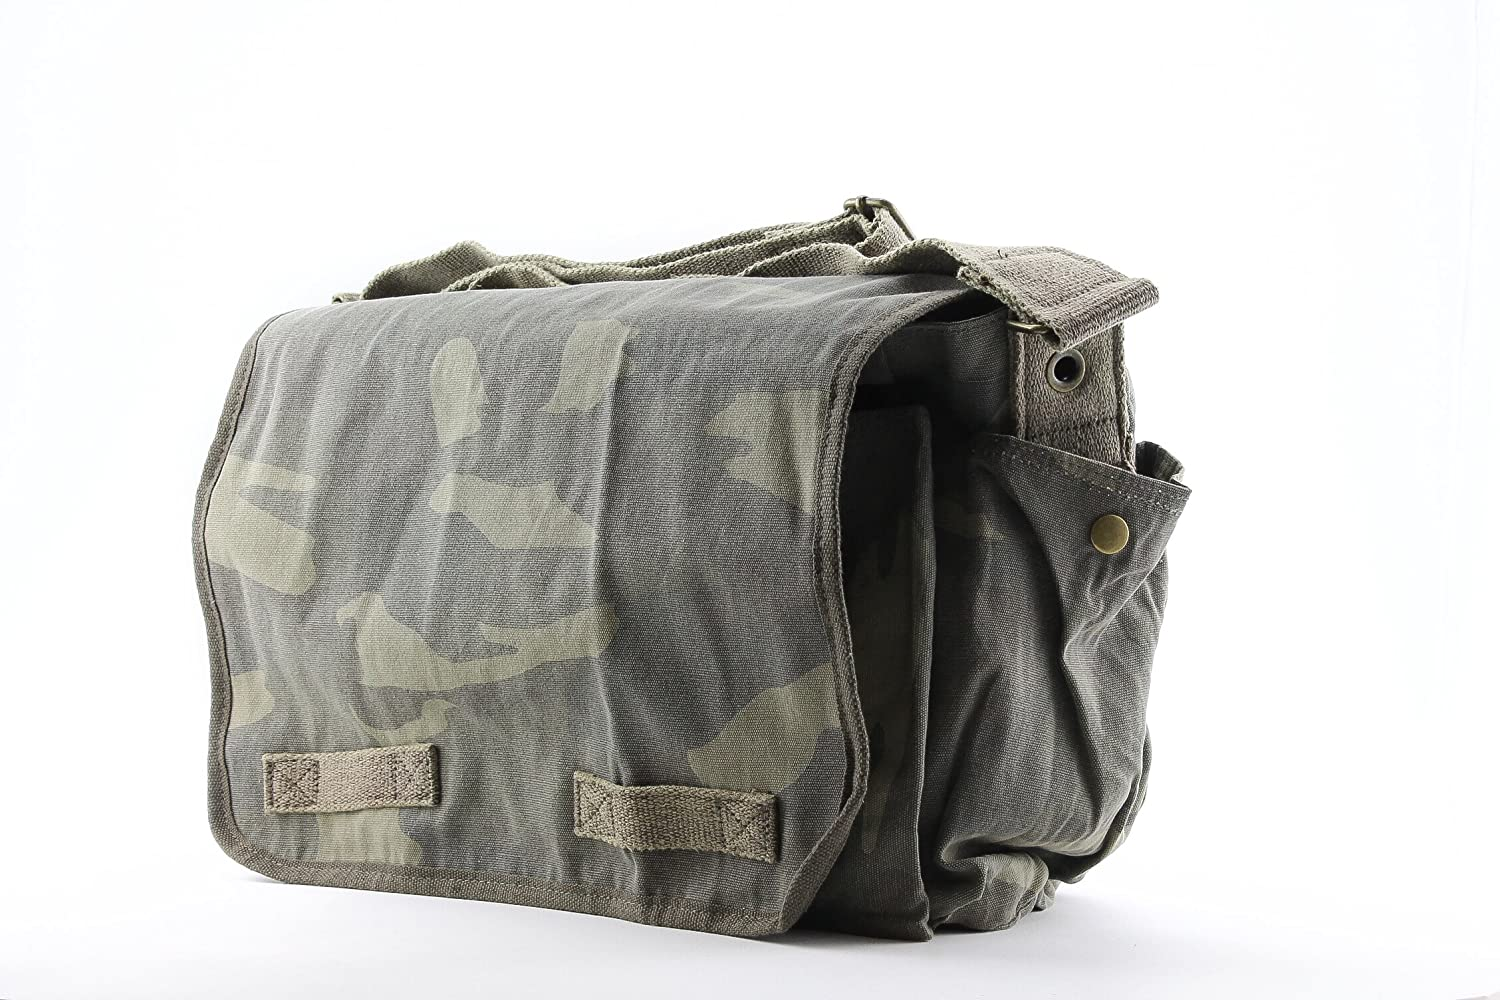 Amazon.com  Woodland Camouflage Mini Messenger Bag Heavyweight Cotton  Canvas Shoulder Bag with official Army Universe Pin  Camouflage Messenger  Bag  ... 5d296f3667e